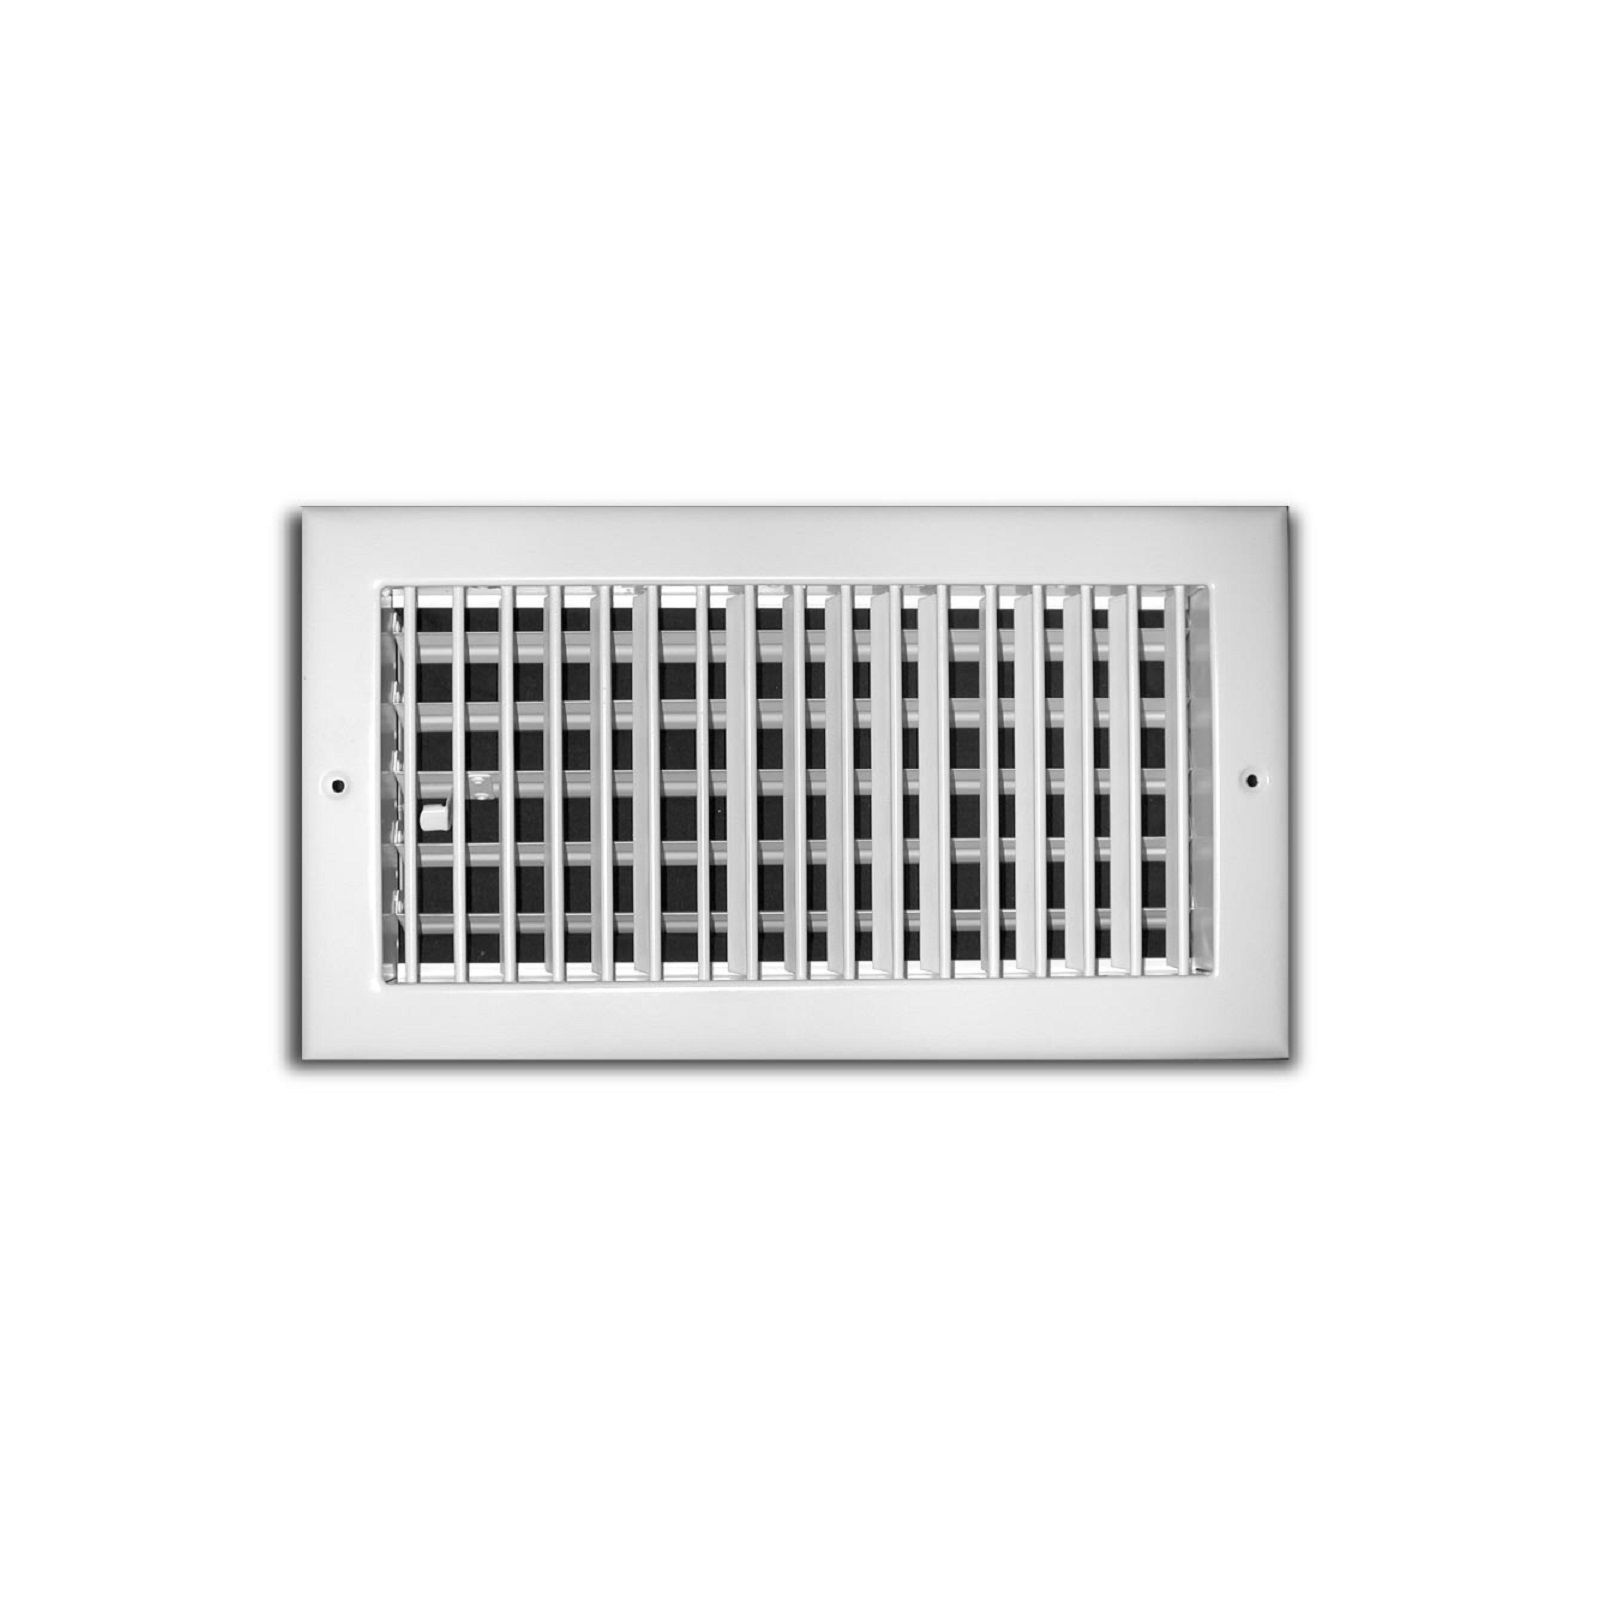 "TRUaire 210VM 20X04 - Steel Adjustable 1-Way Wall/Ceiling Register With Multi Shutter Damper, White, 20"" X 04"""